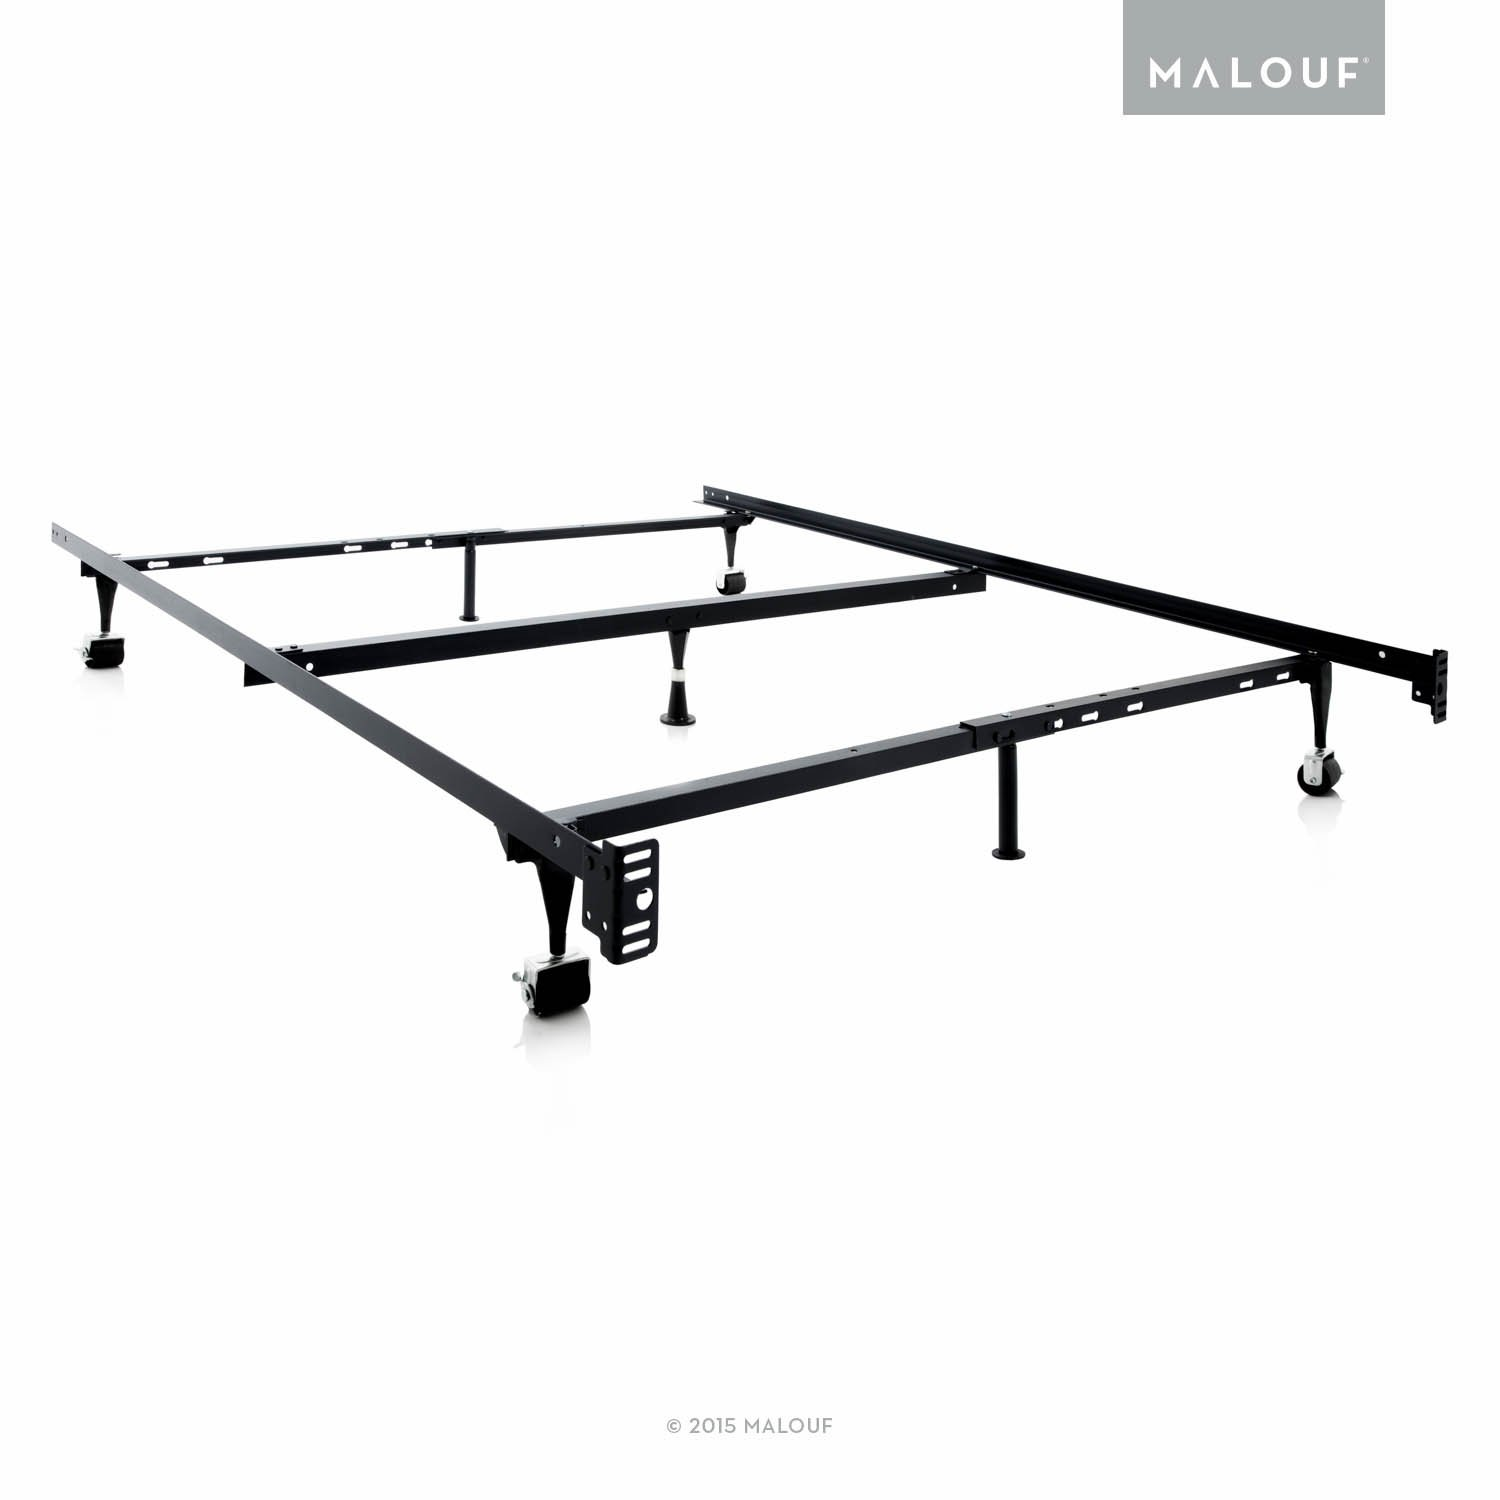 MALOUF Best Bed Frames Review by www.snoremagazine.com